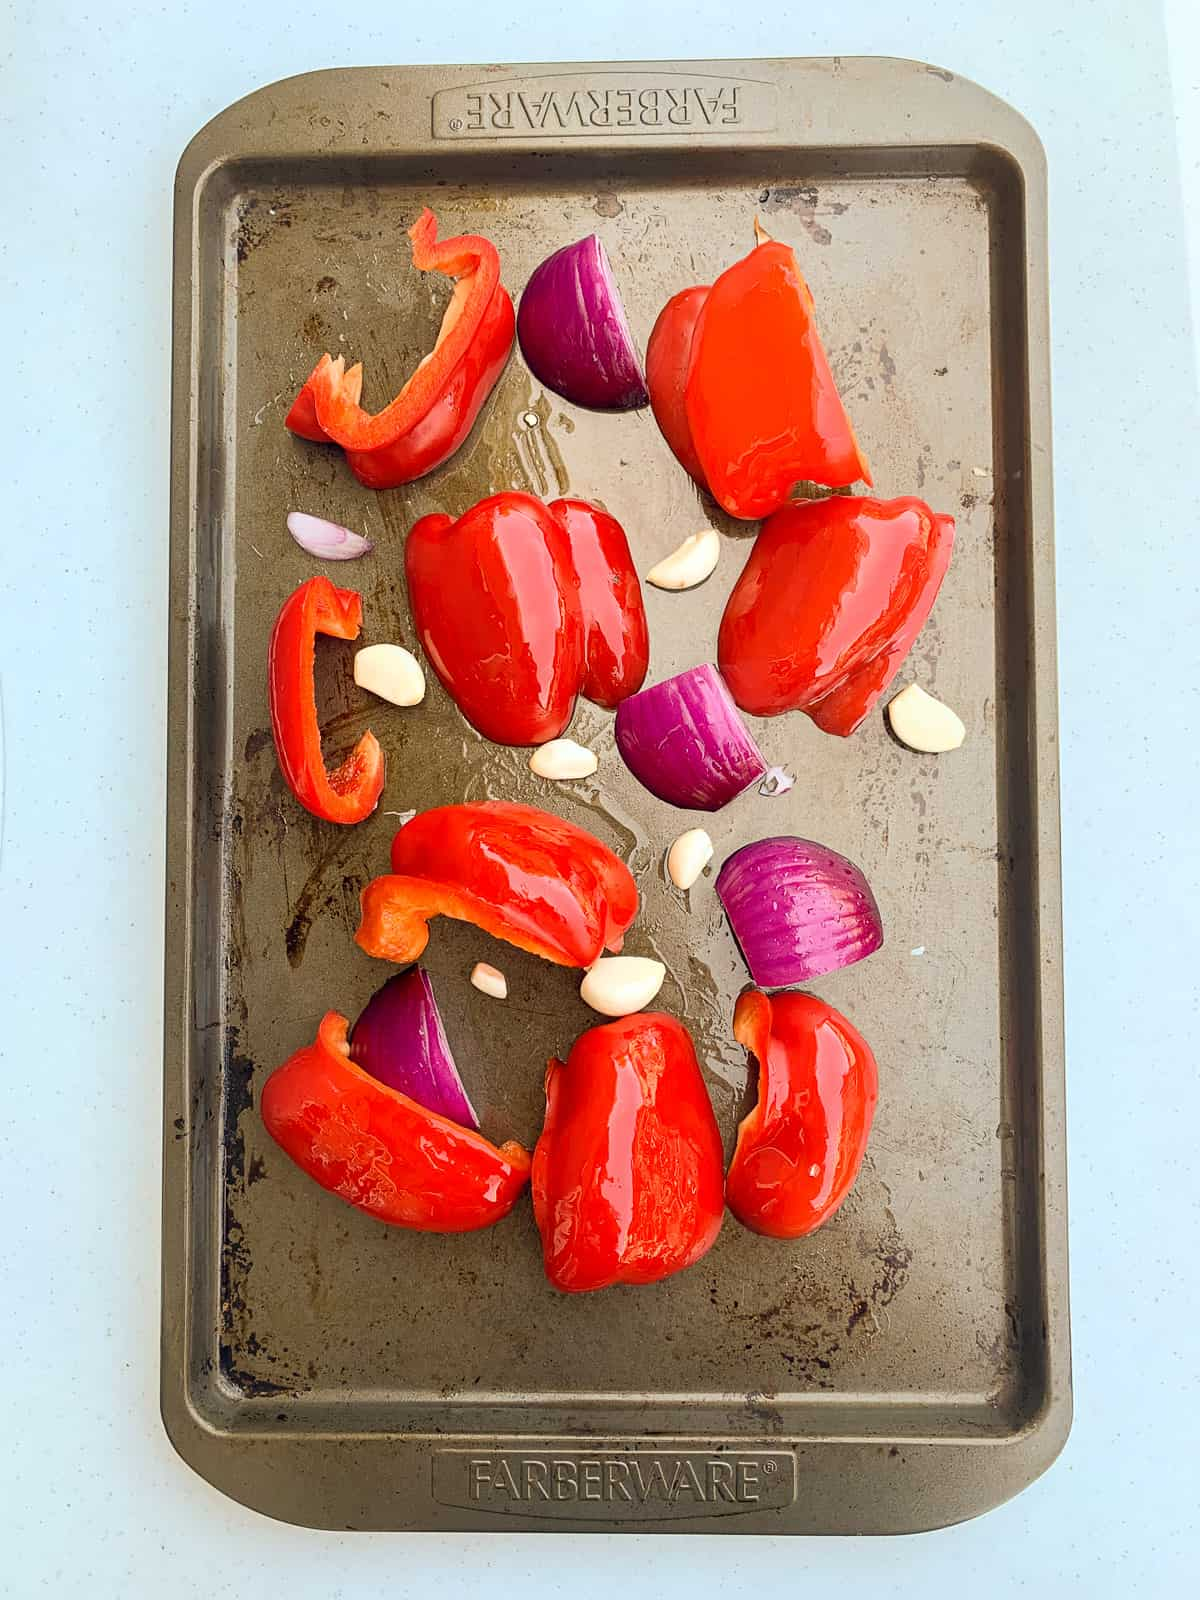 Veggies set on a baking tray for roasting